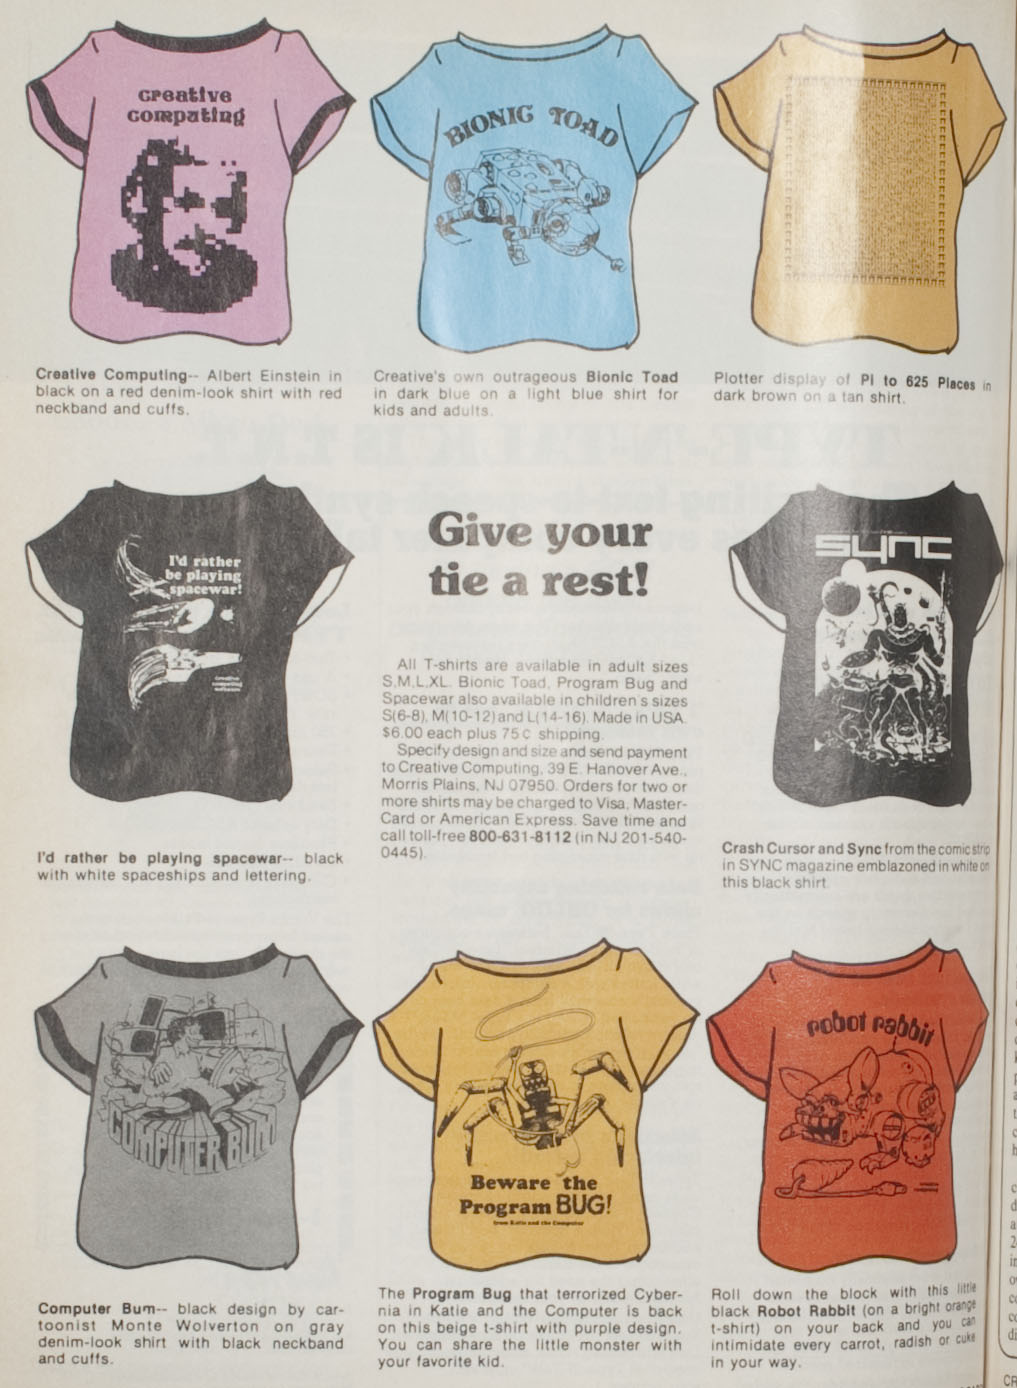 T-shirt advertisement